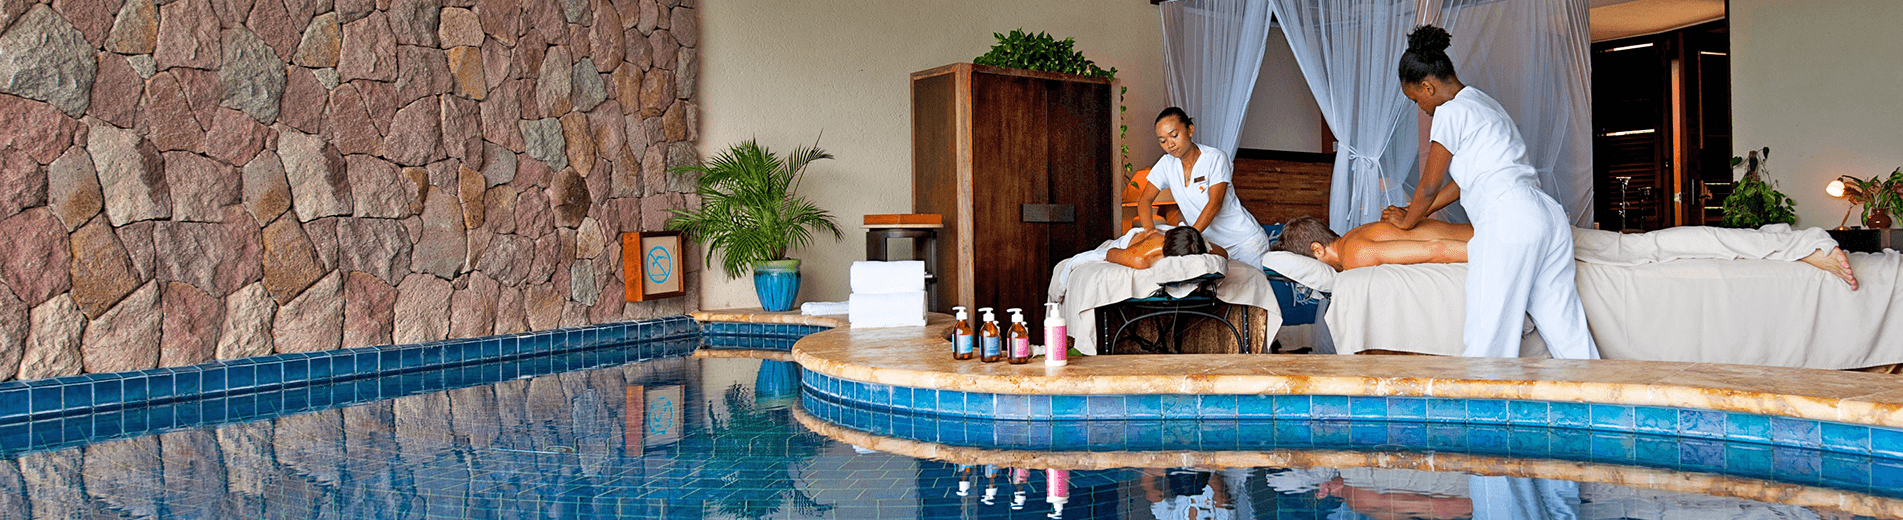 At Jade Mountain you can choose from a carefully selected menu of spa treatments that offer classical body and beauty treatments, as well as Ayurveda and holistic services. An island getaway isn't complete without a return to wellness.